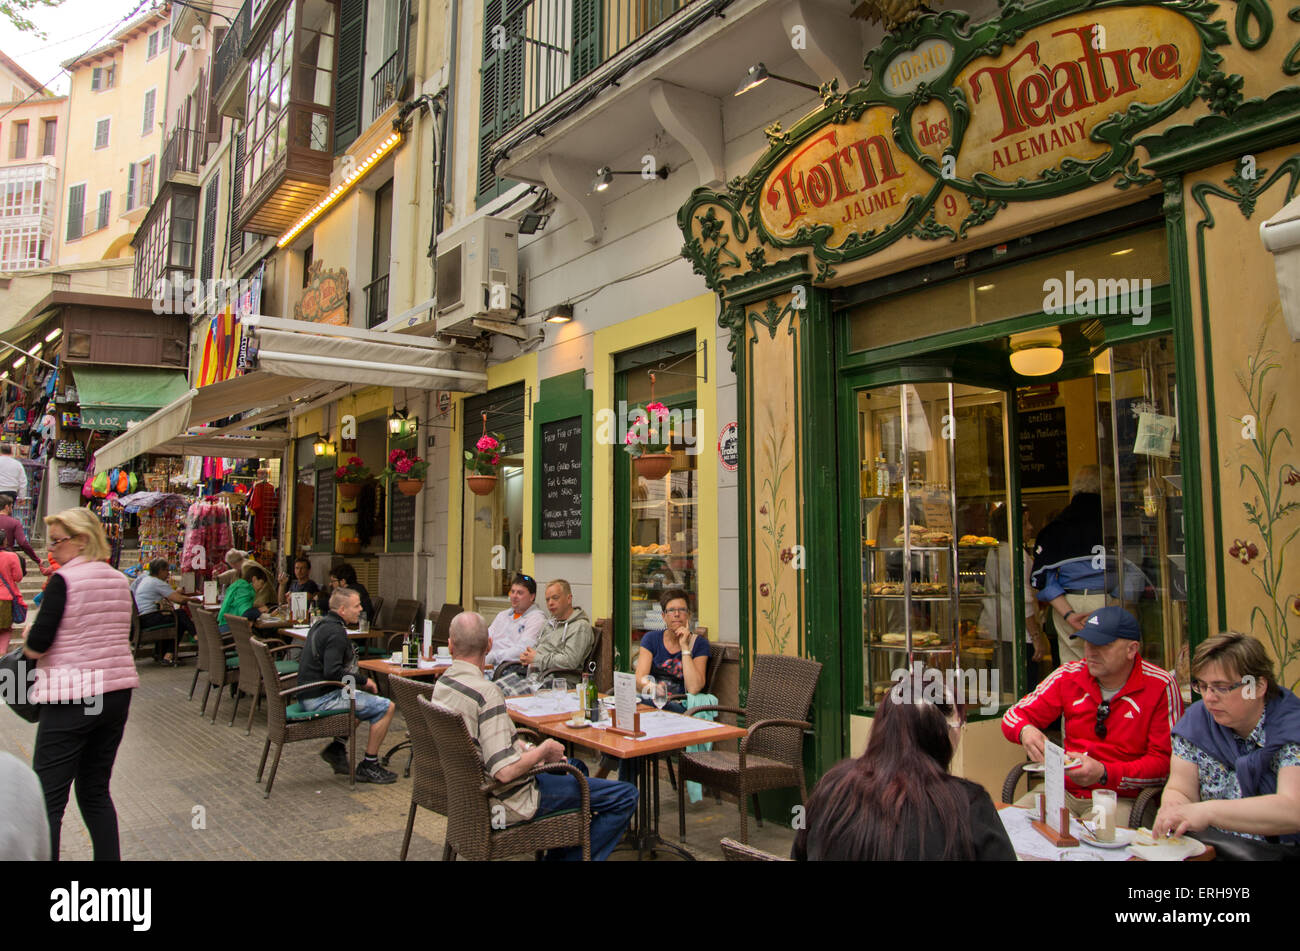 Palma Majorca Forn des Teatre bakery and cafe - Stock Image